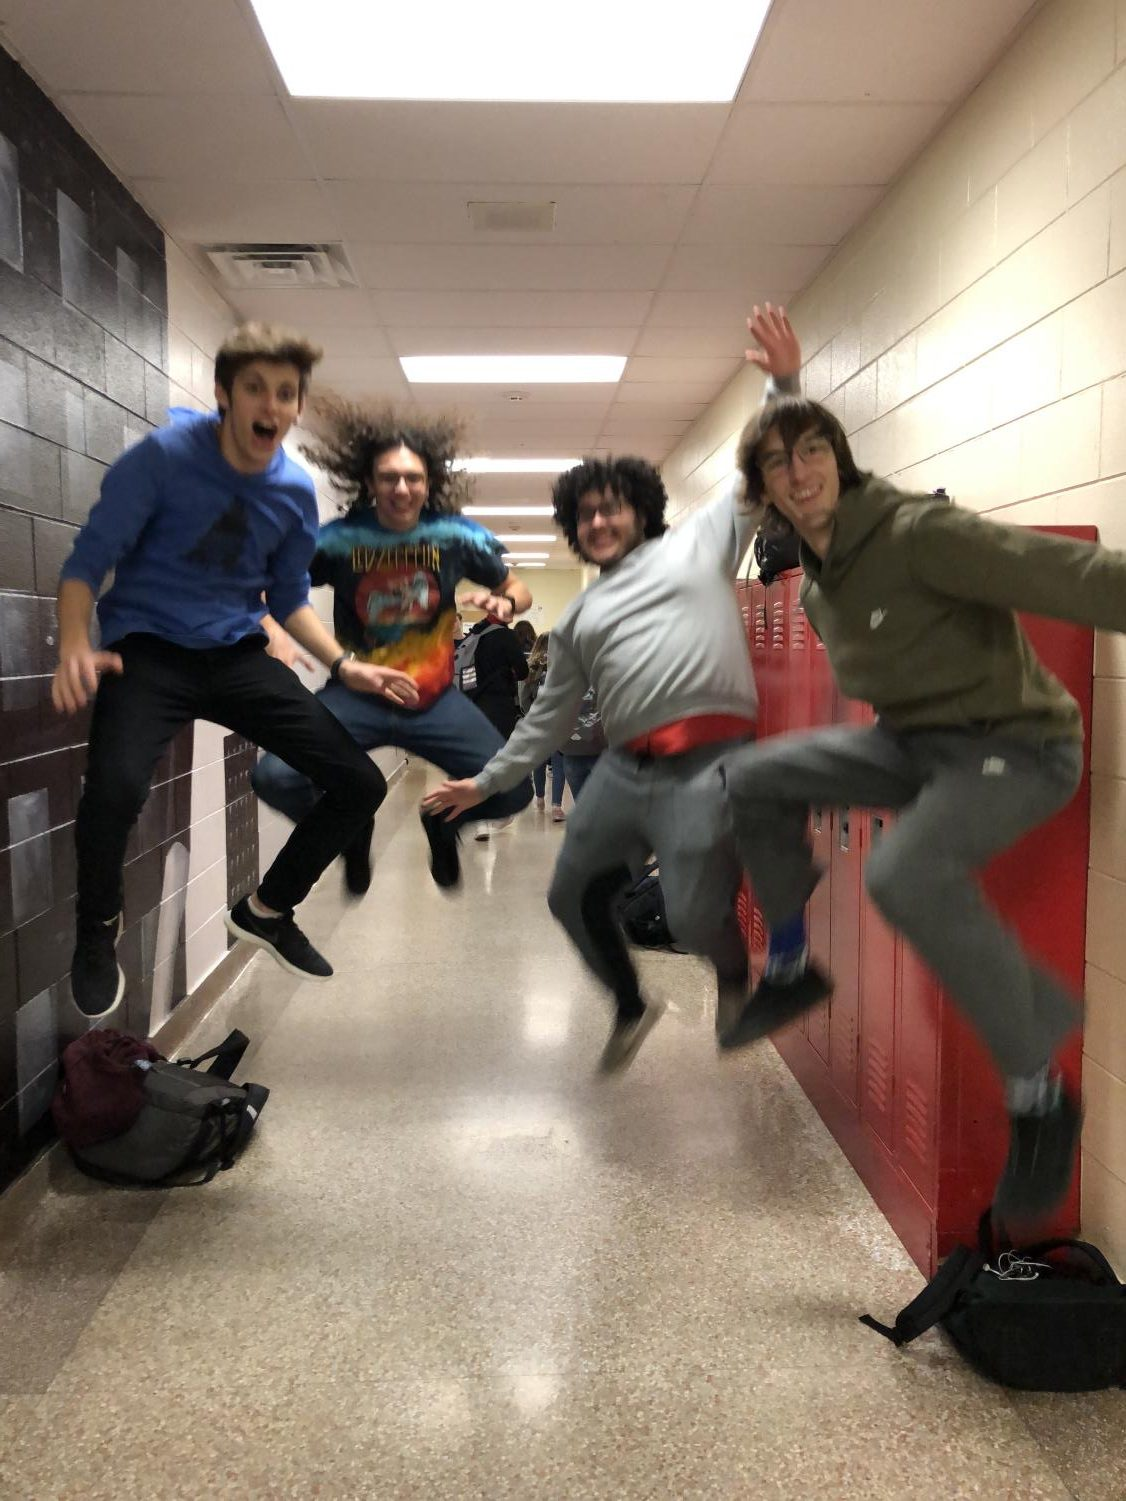 Junior Ian Zempel, Freshman Slater Gutierrez, Junior Johnny Montanez, and Senior Sam Kaffine jumping for joy for their musical accomplishments (or love of music).